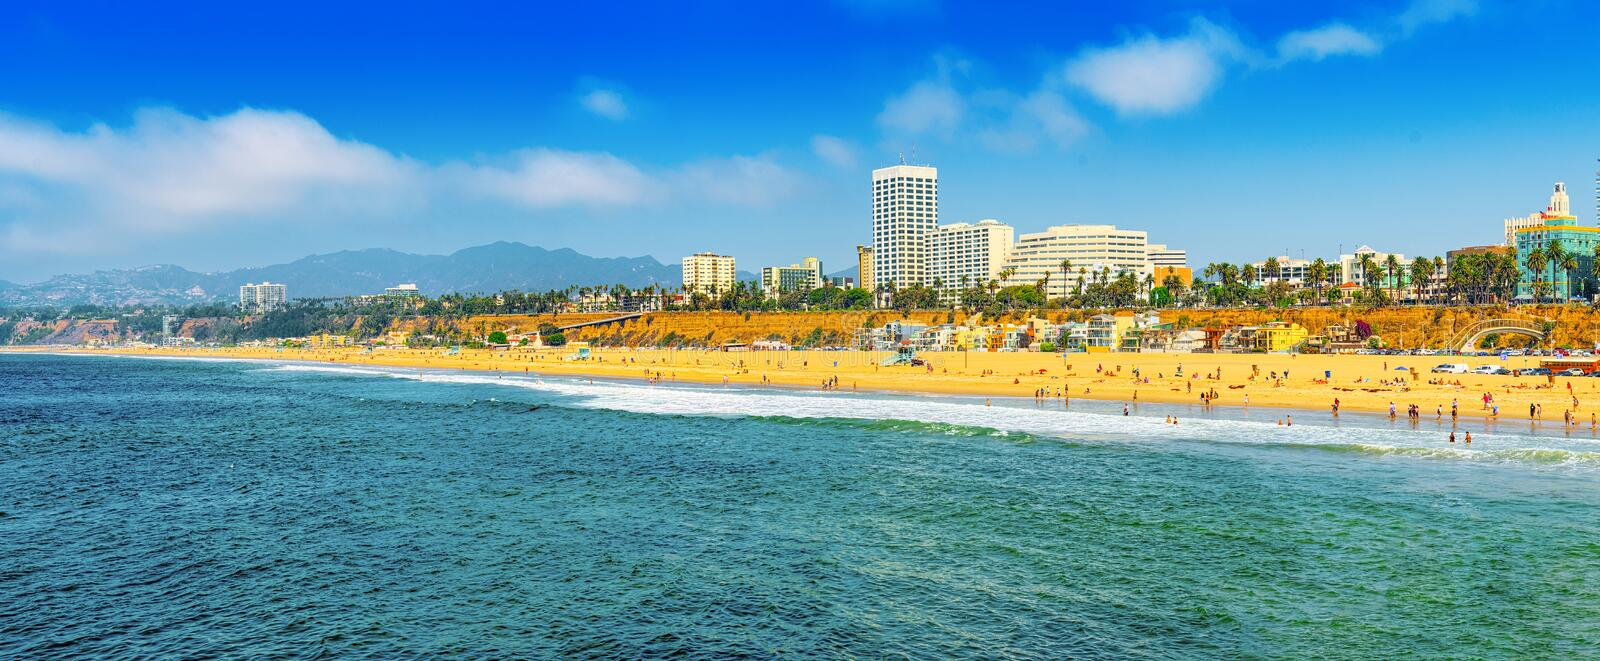 View of the beach of Santa Monica and the Pacific Ocean. Suburbs of Los Angeles. California stock images